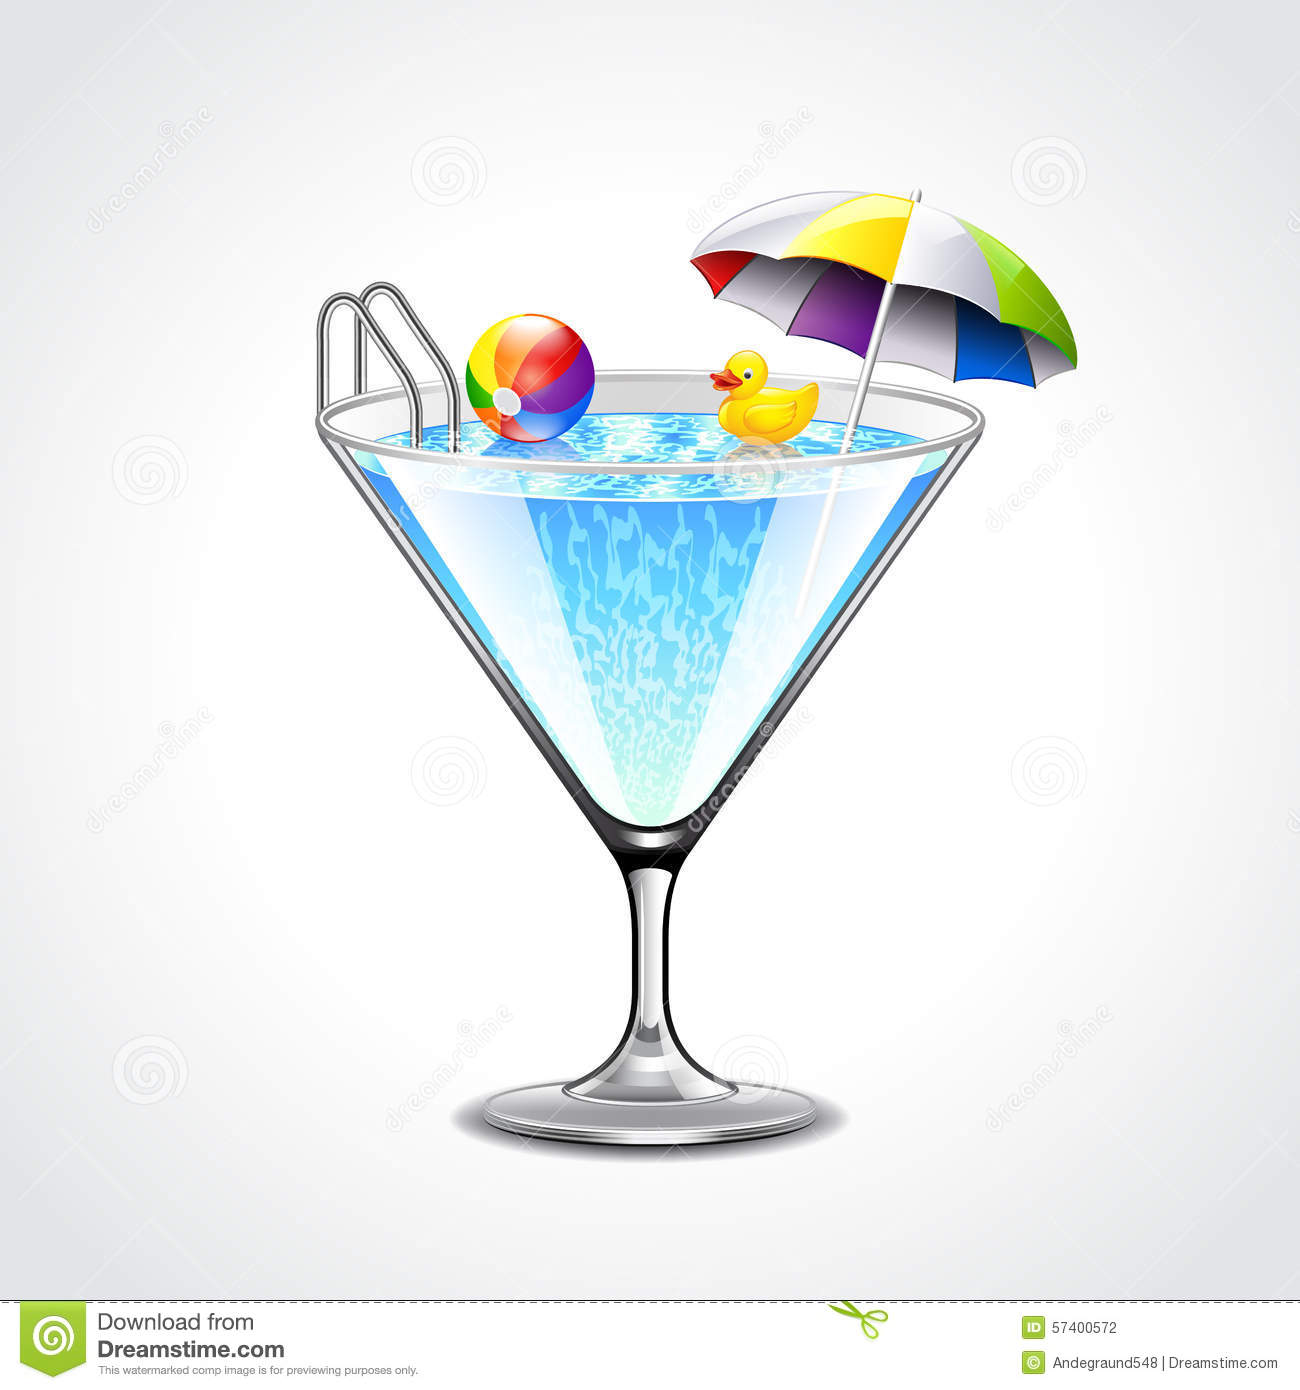 Swimming Pool In Martini Glass Vacation Concept Stock Vector Image 57400572